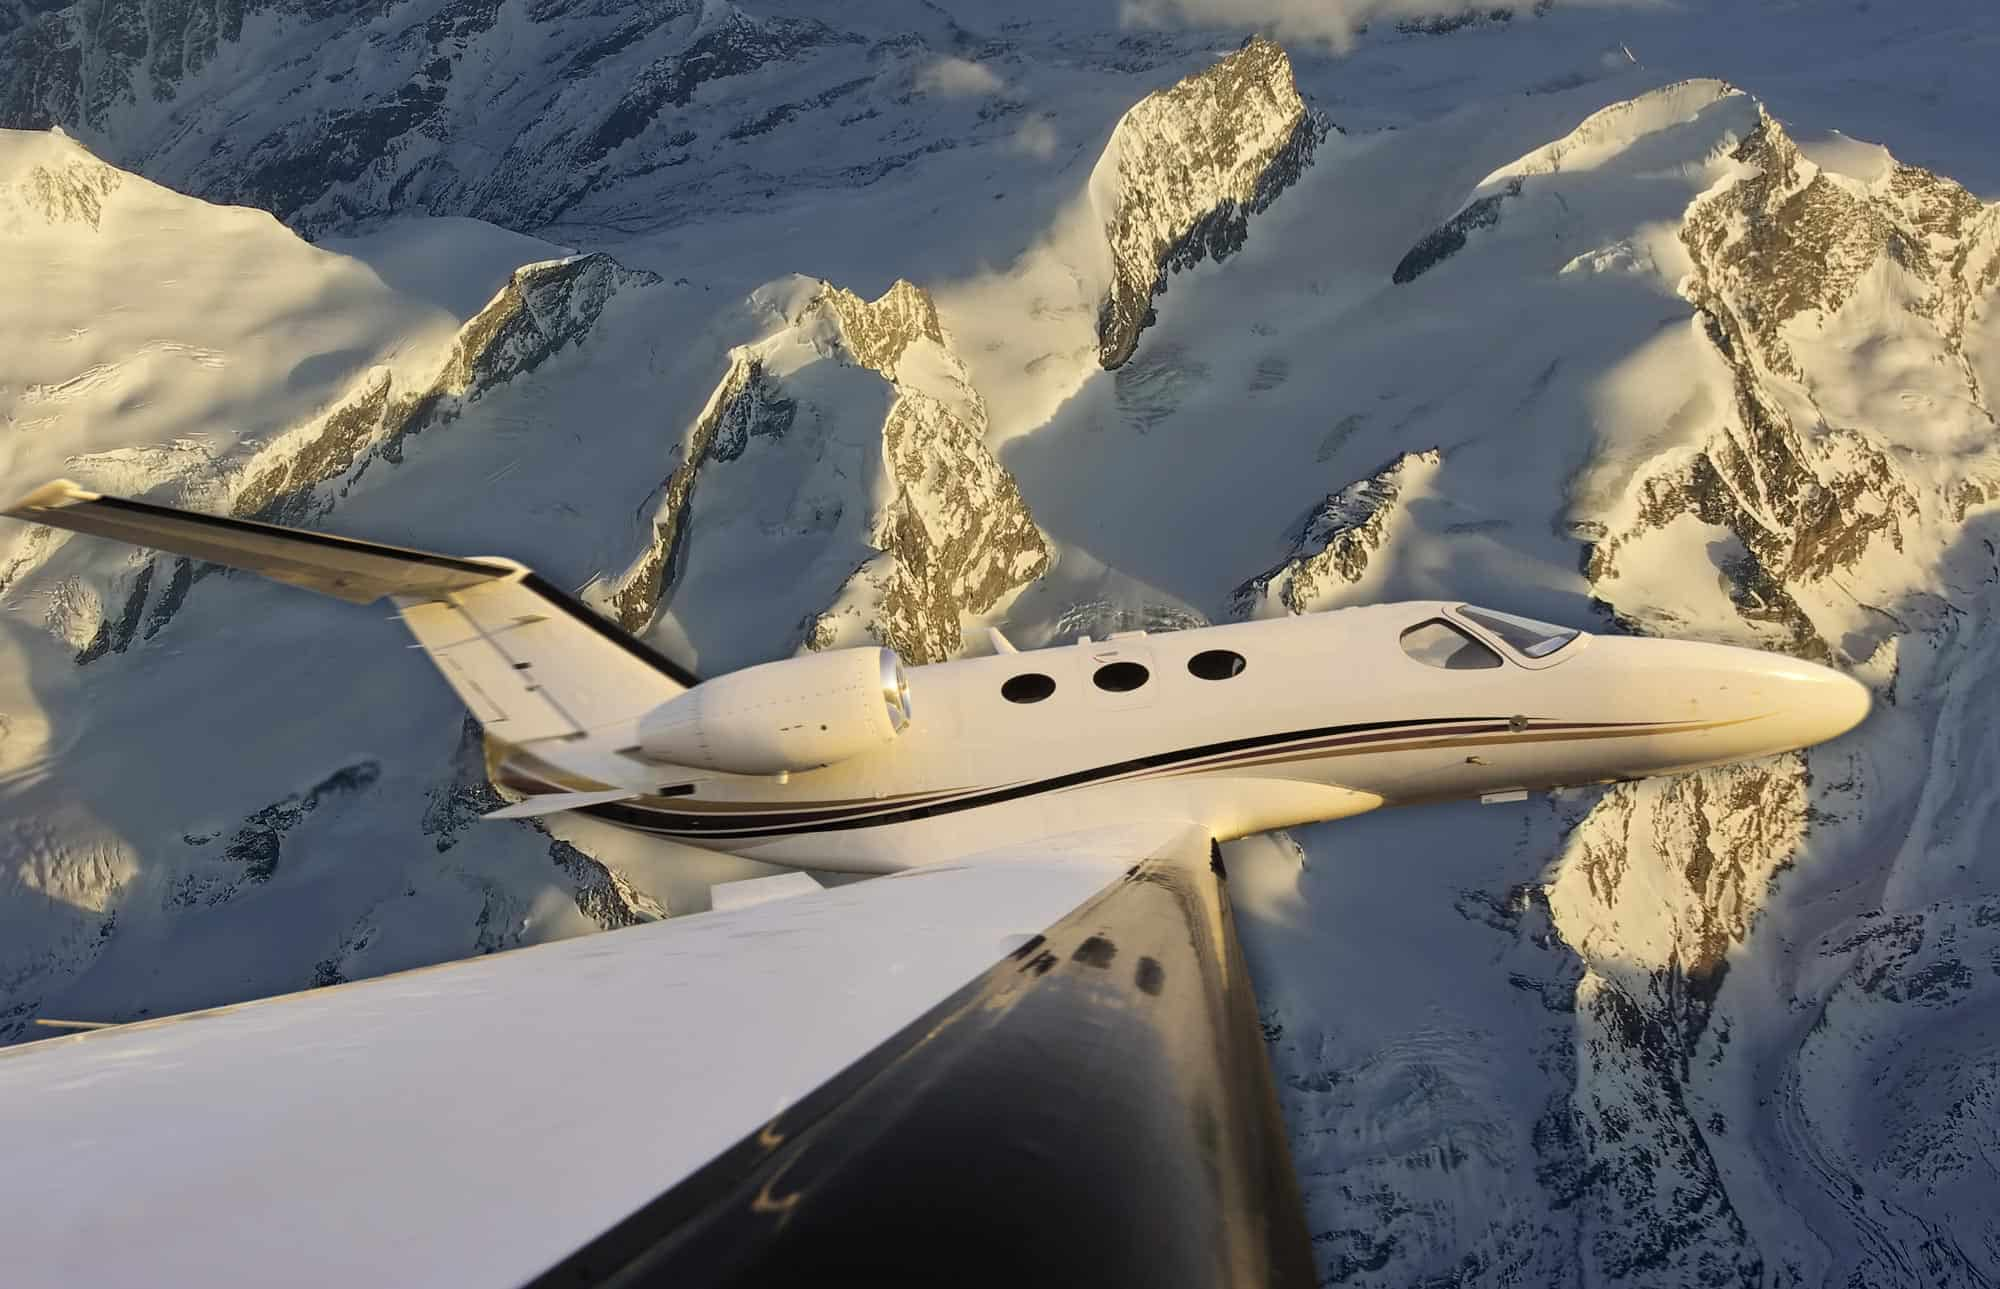 Private Jet over the Mountains in the Winter